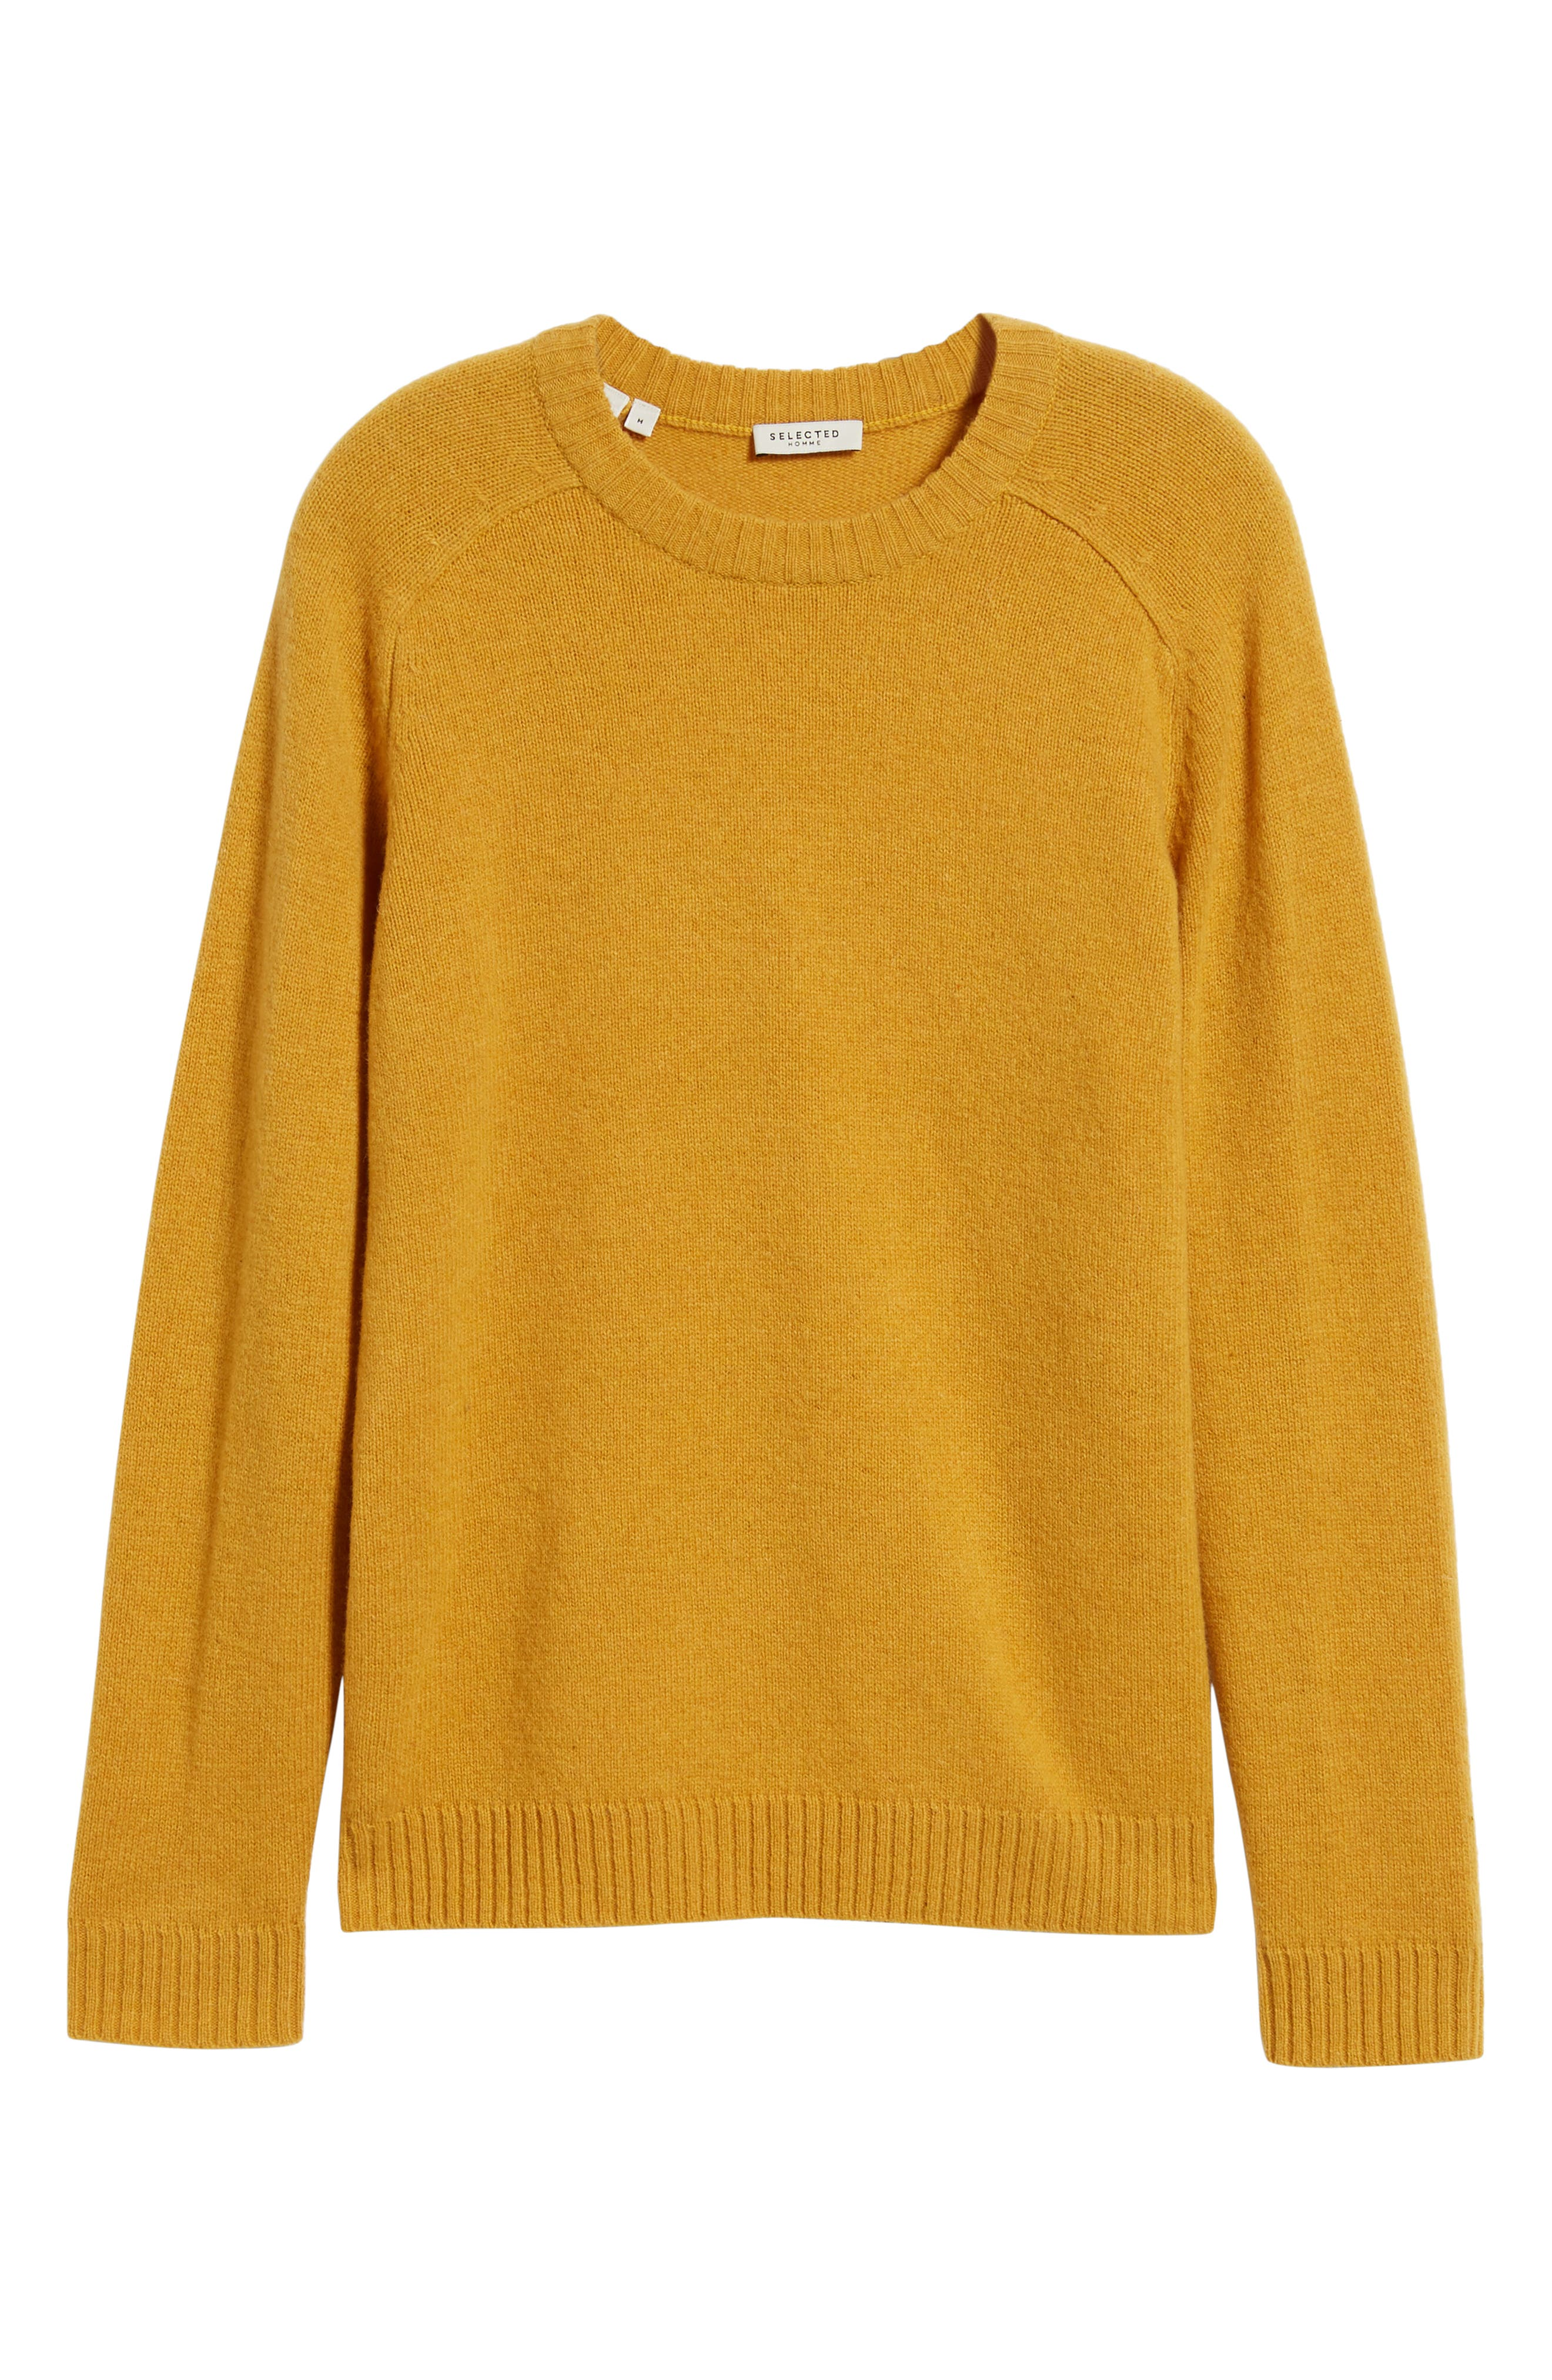 New Coban Regular Fit Wool Sweater,                             Alternate thumbnail 6, color,                             CURRY